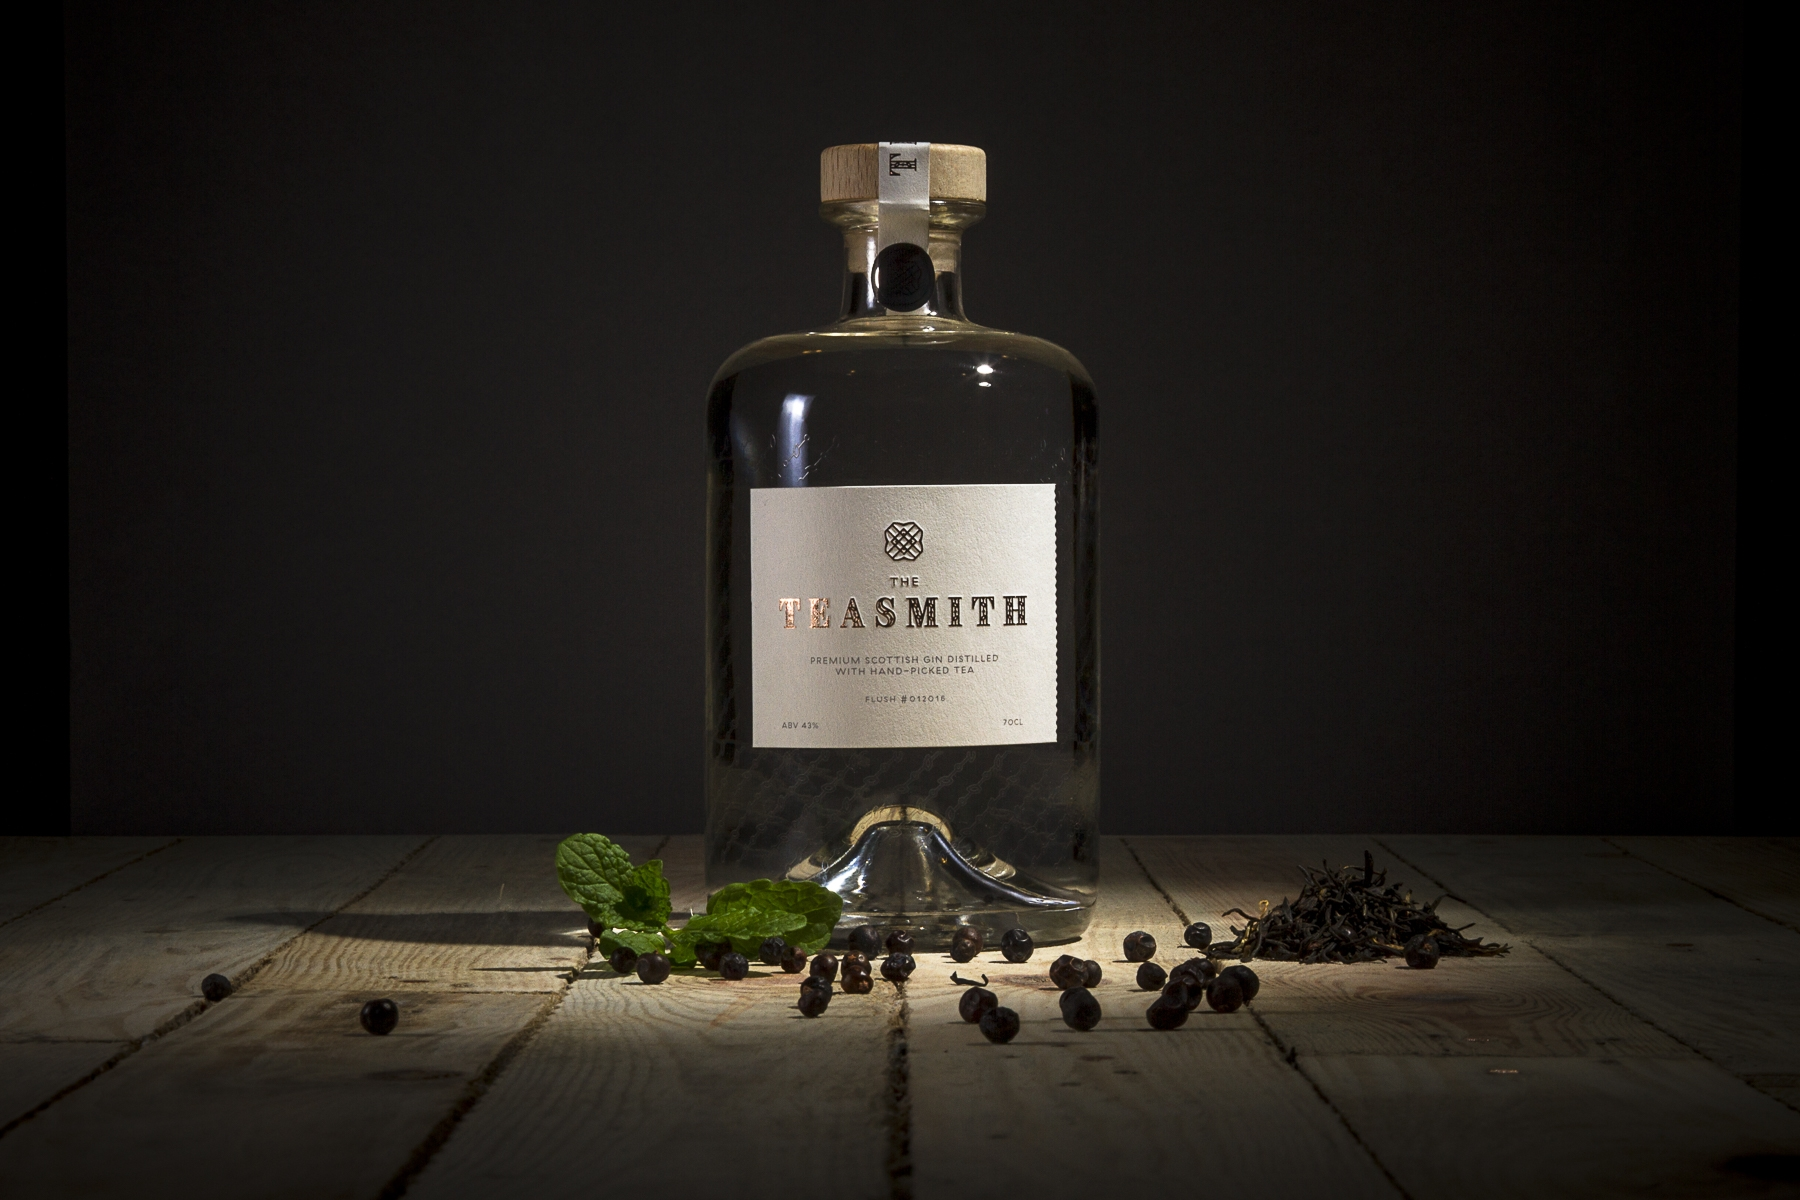 The Teasmith Spirit Company